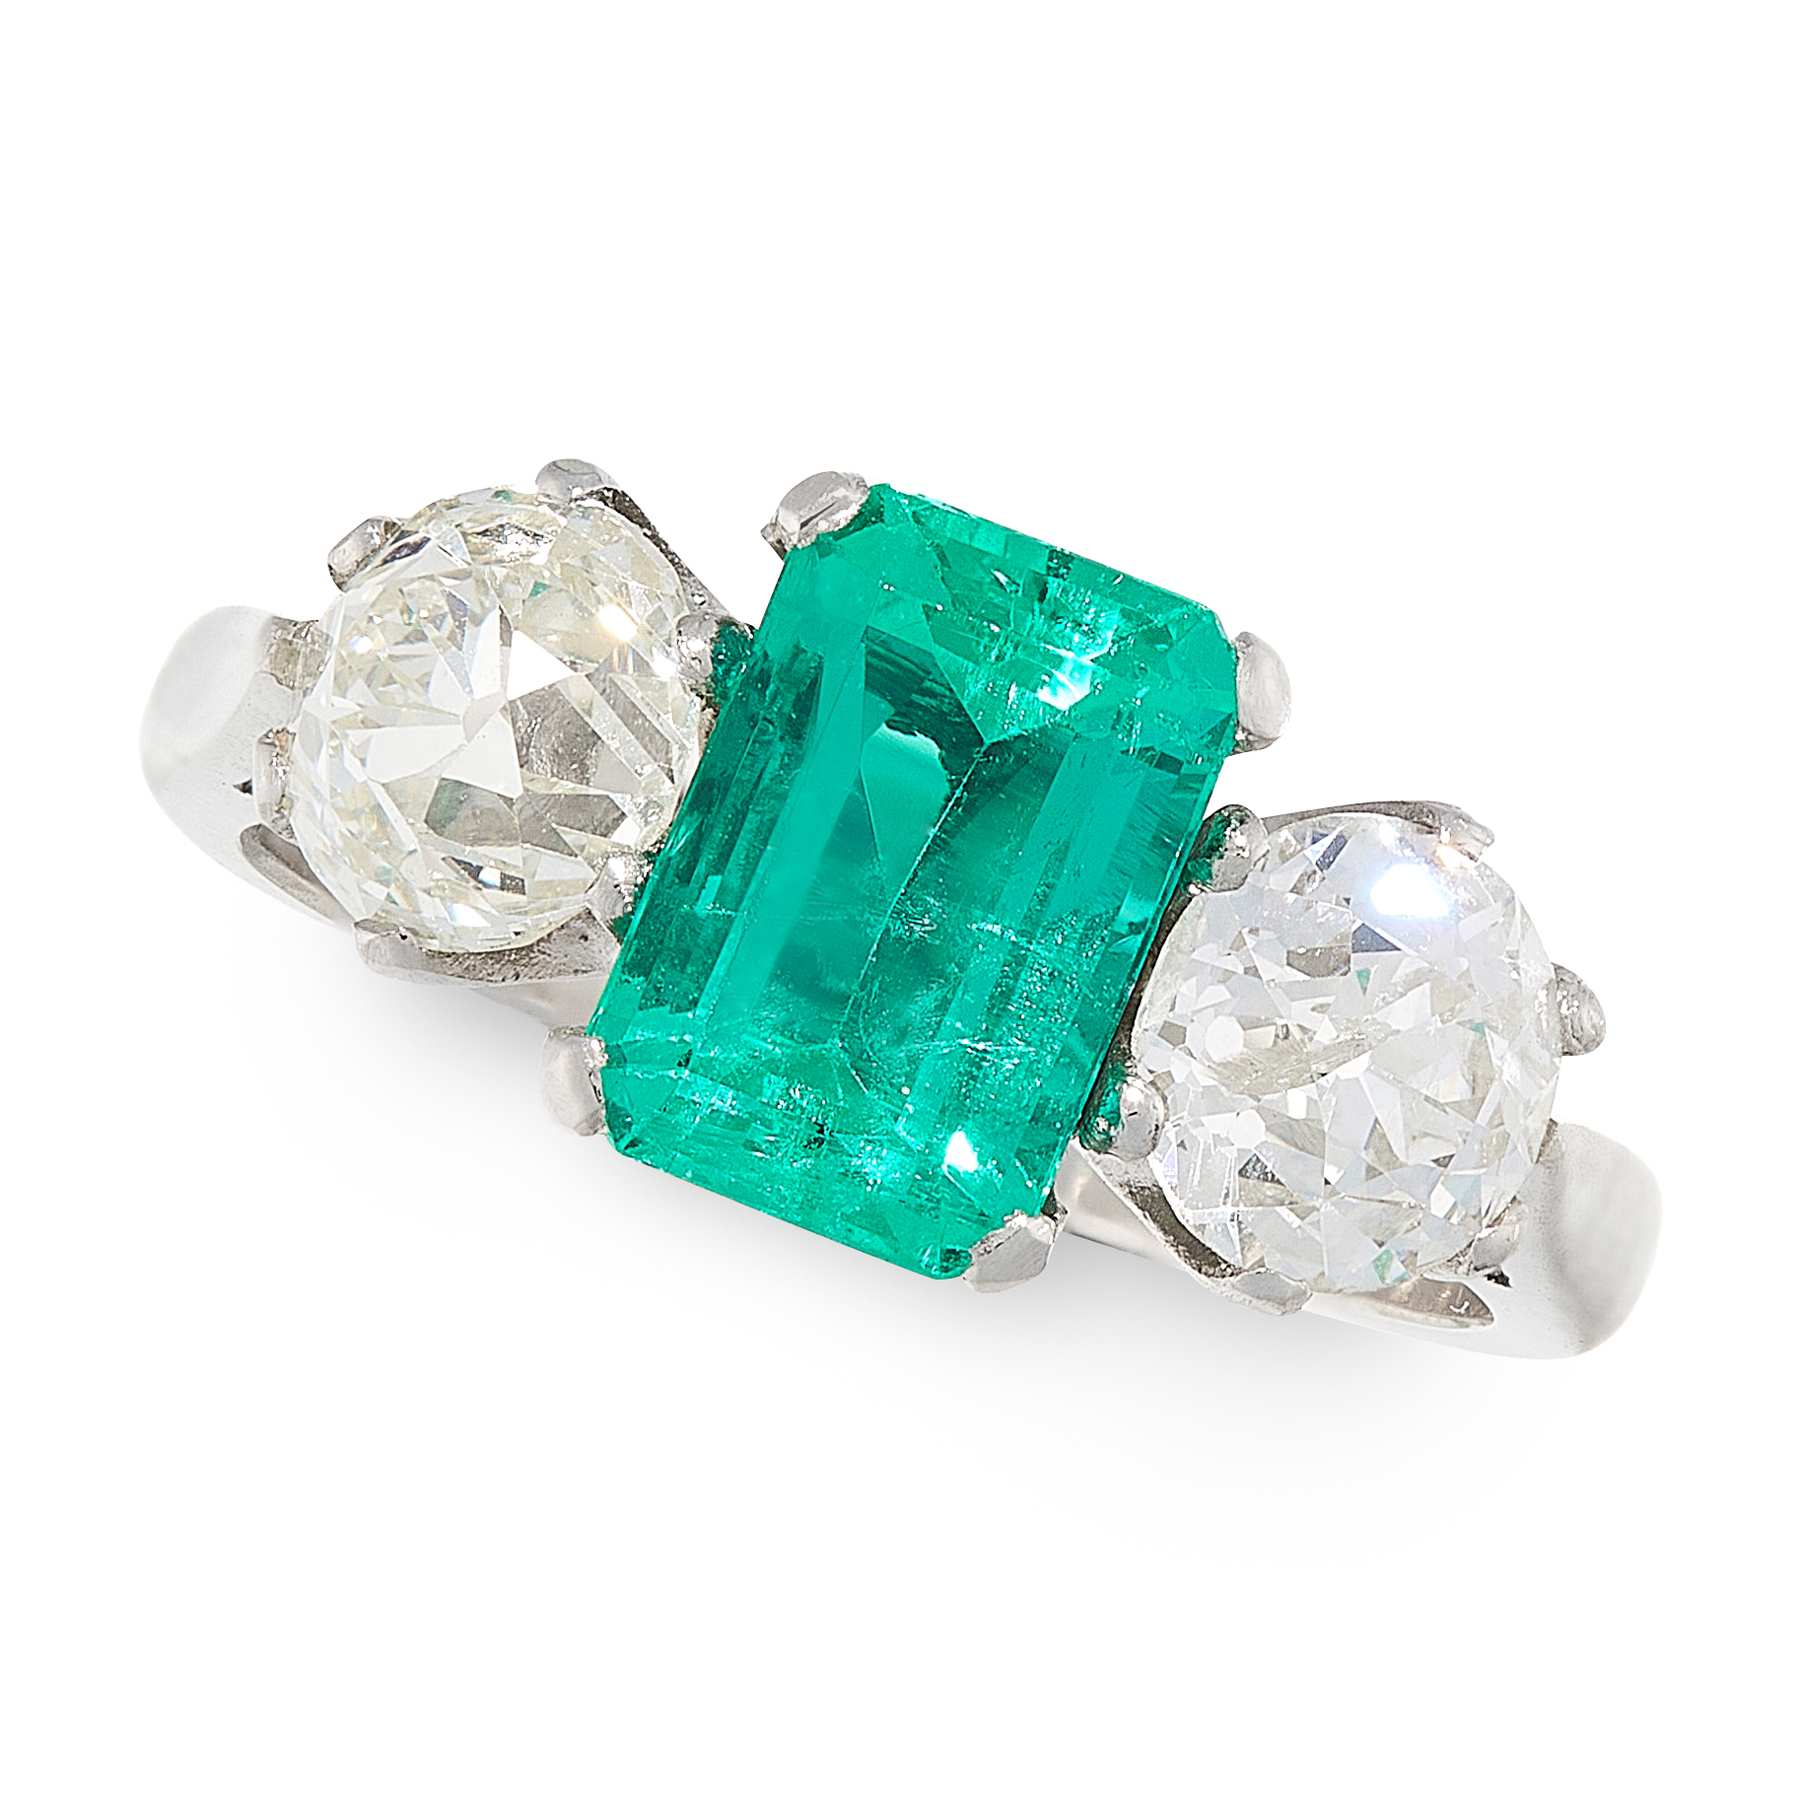 A COLOMBIAN EMERALD AND DIAMOND RING in platinum, set with an emerald cut emerald of 1.75 carats